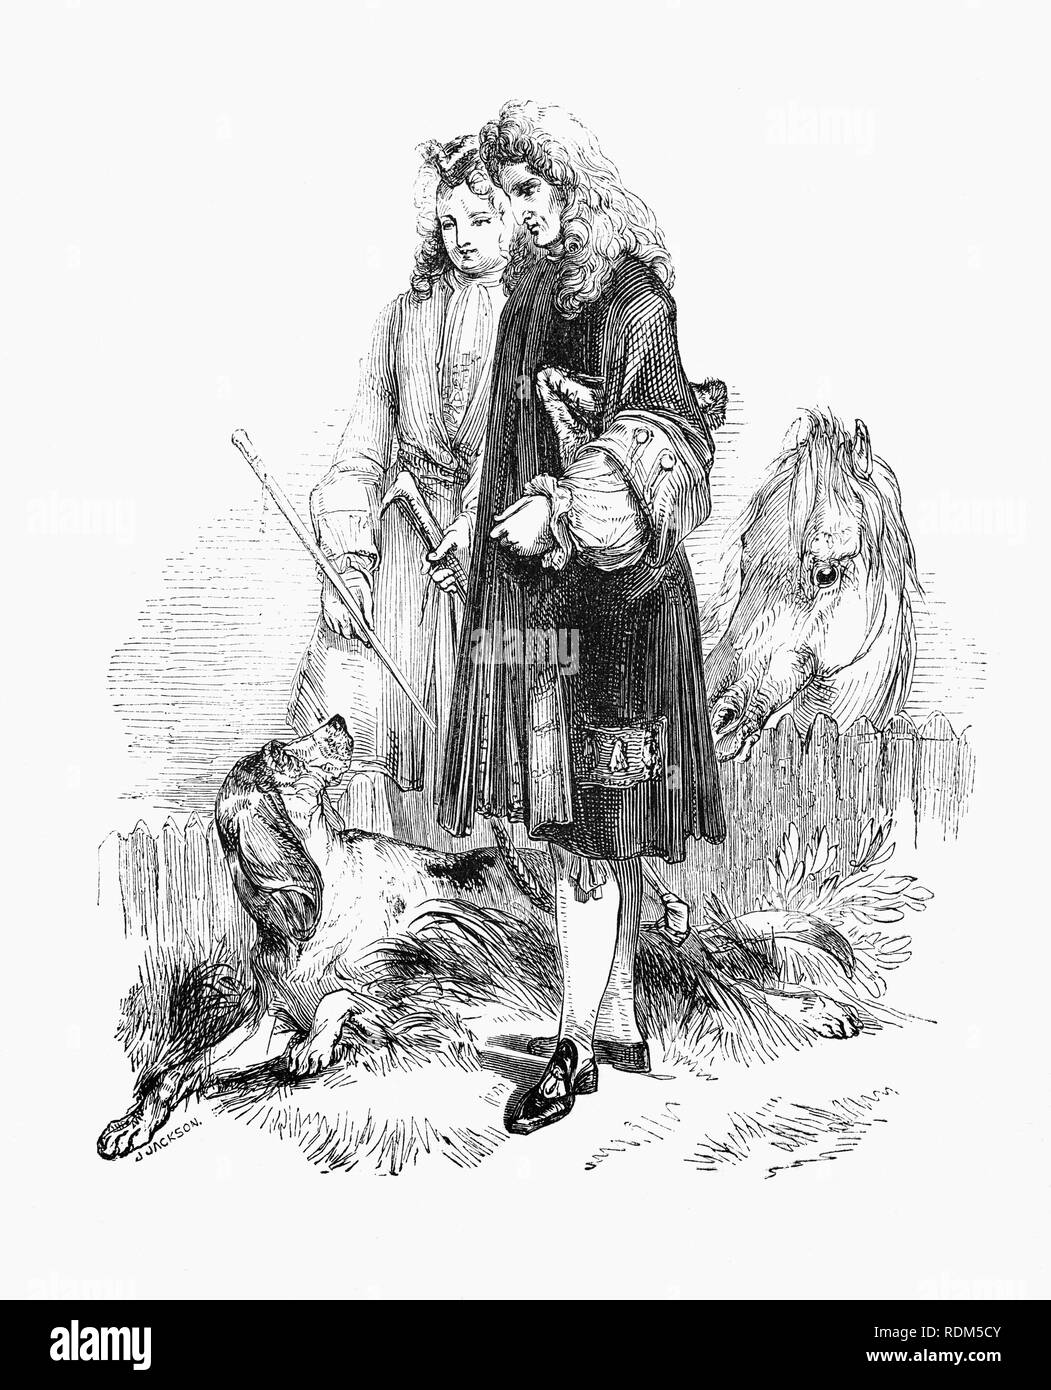 Sir Roger de Coverley, fictional character, devised by Joseph Addison, who portrayed him as the ostensible author of papers and letters that were published in Addison and Richard Steele's influential periodical The Spectator. As imagined by Addison, Sir Roger was a baronet of Worcestershire and was meant to represent a typical landed country gentleman. He was also a member of the fictitious Spectator Club, and the de Coverley writings included entertaining vignettes of early 18th-century English life that were often considered The Spectator's best feature. Stock Photo